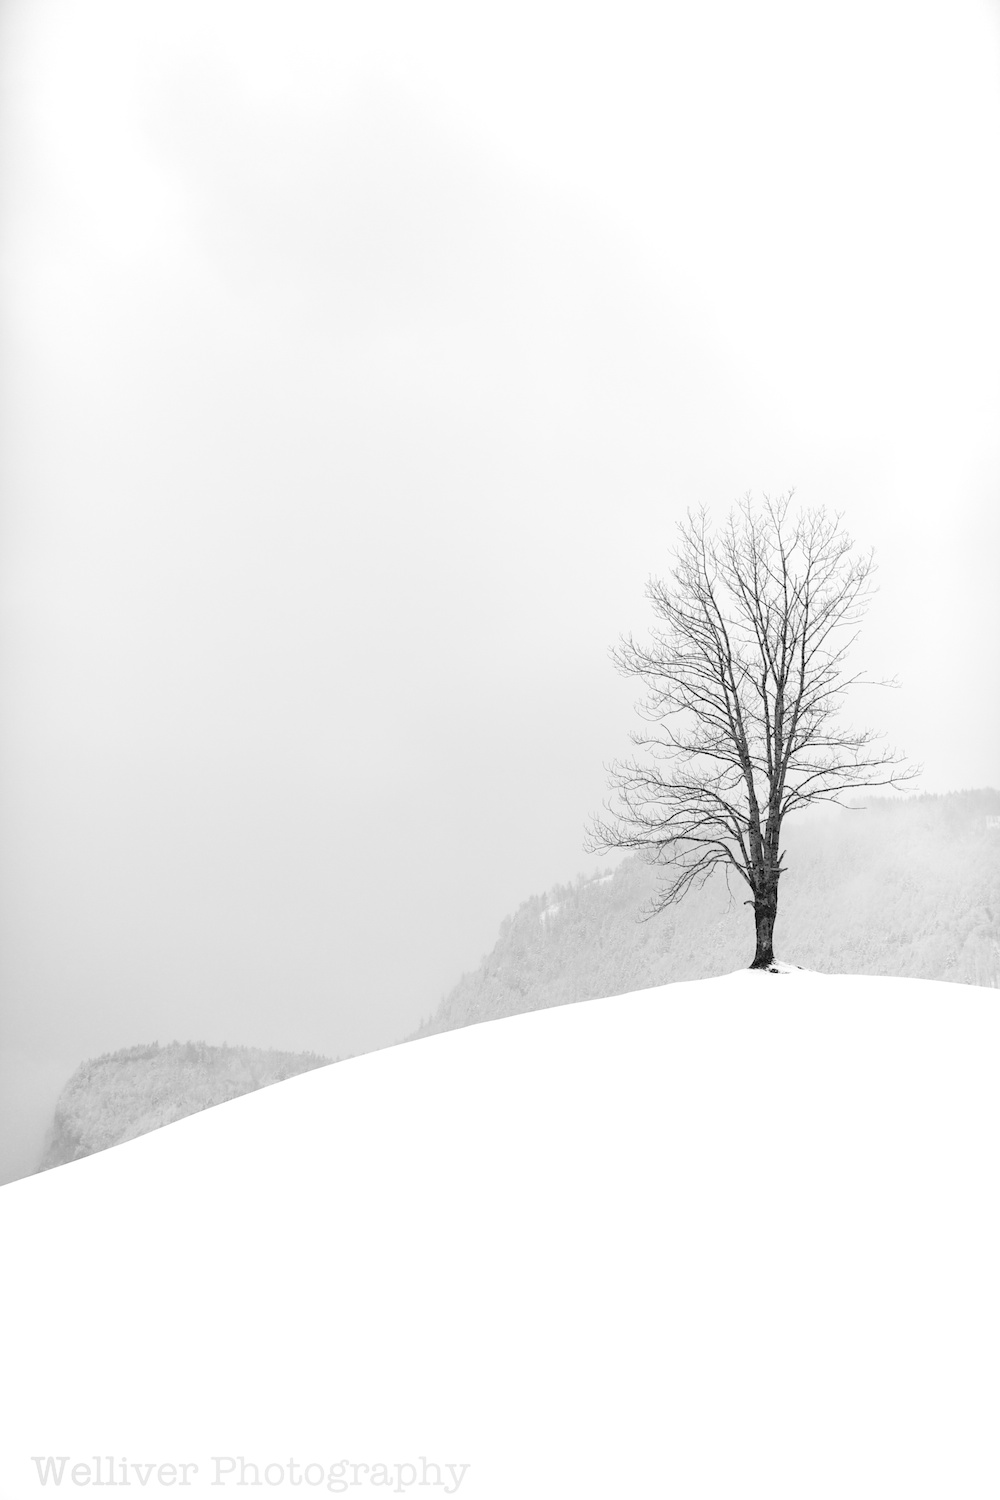 Switzerland: Lone Tree on a Snowy Hill by Beth.